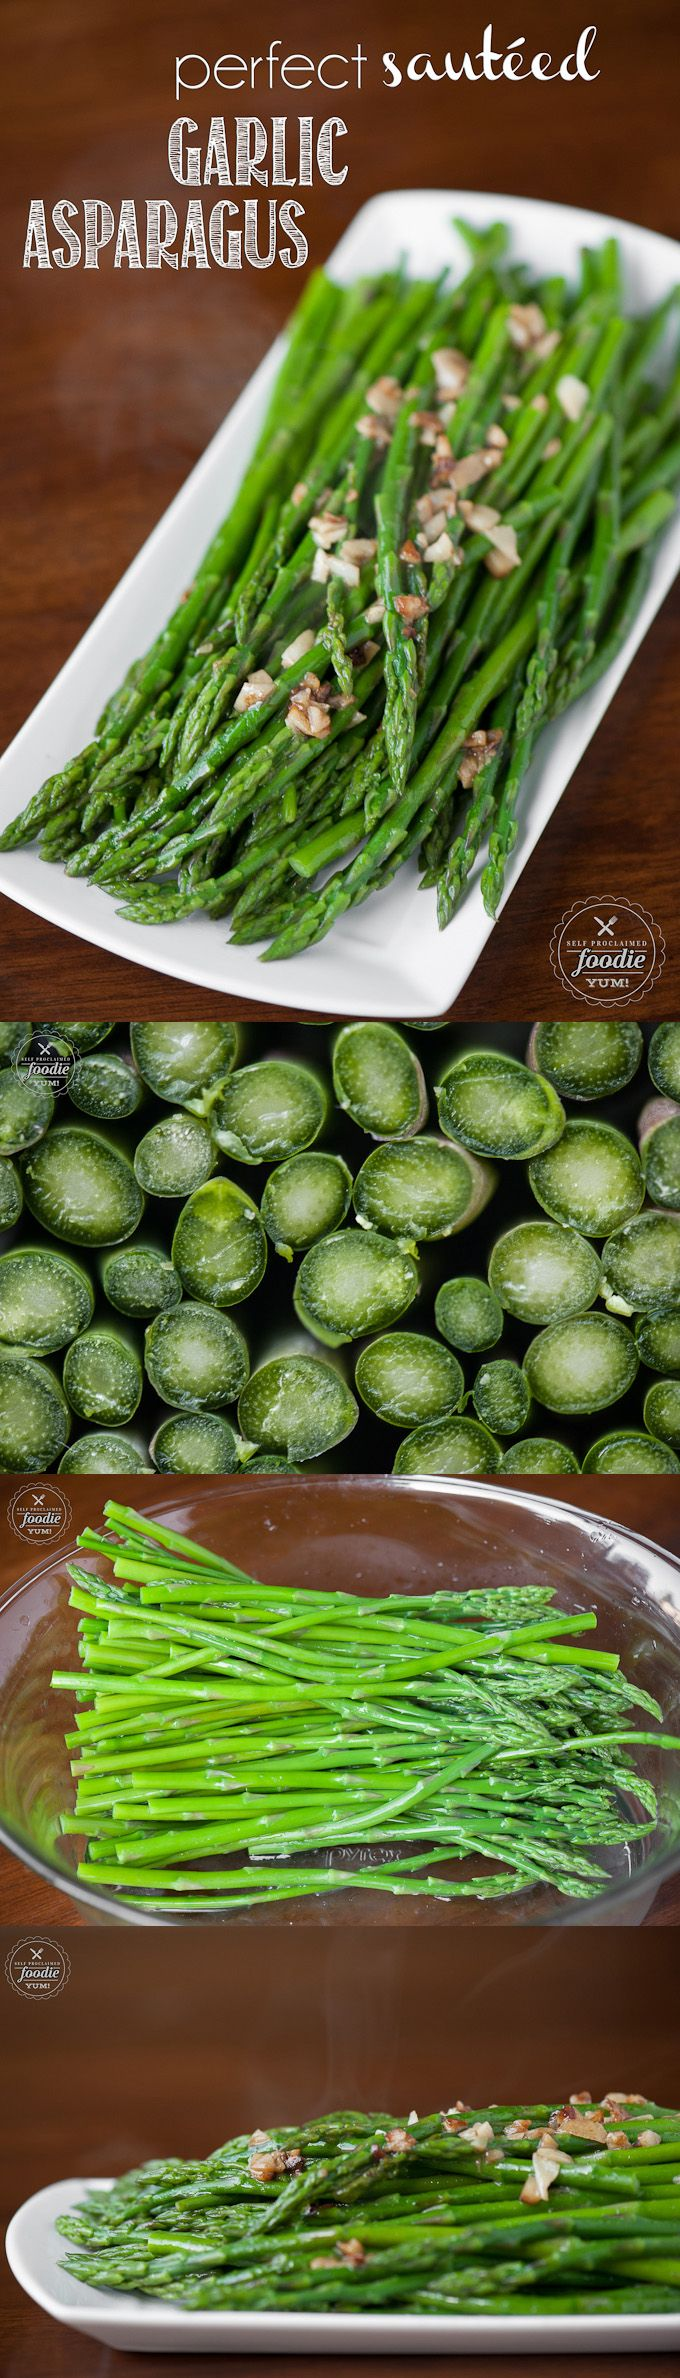 great healthy side dish for any meal asparagus amandine substitute ...